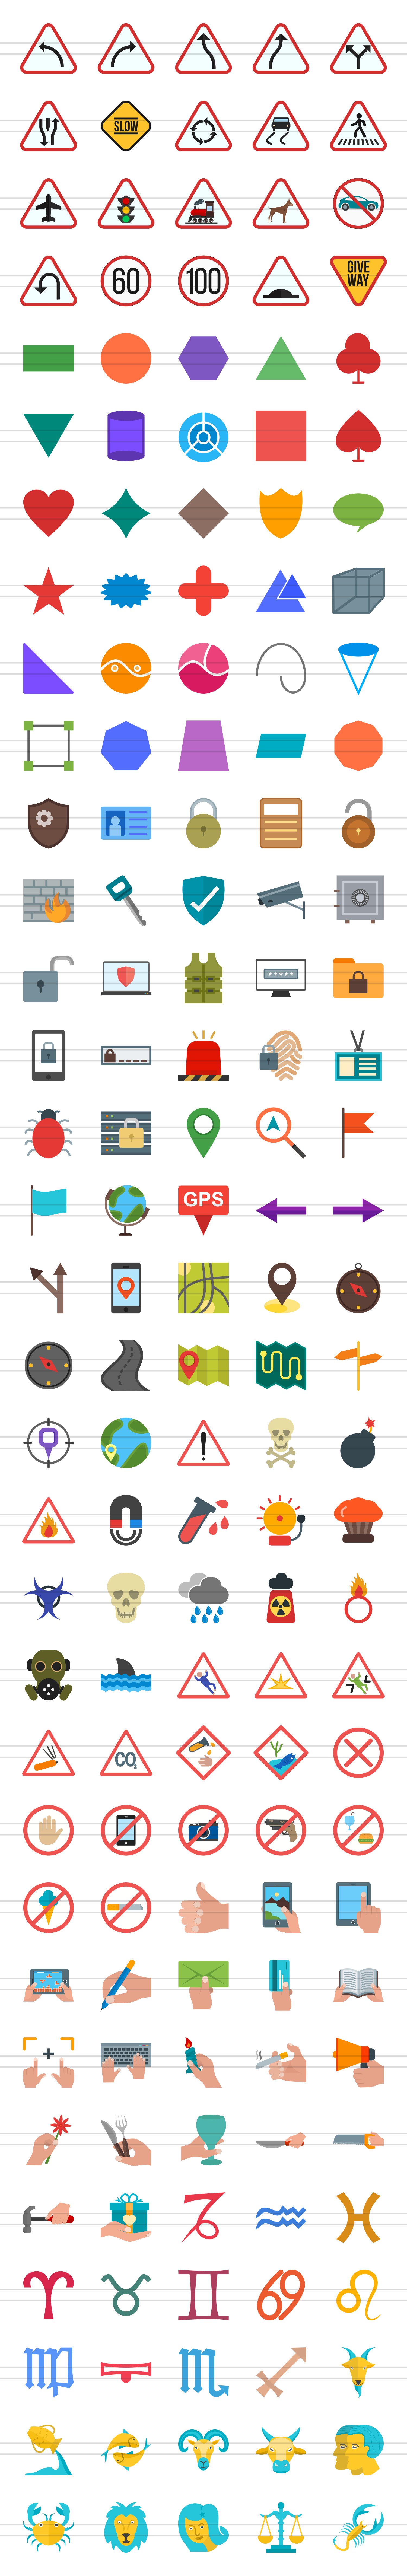 166 Sign Flat Icons example image 2